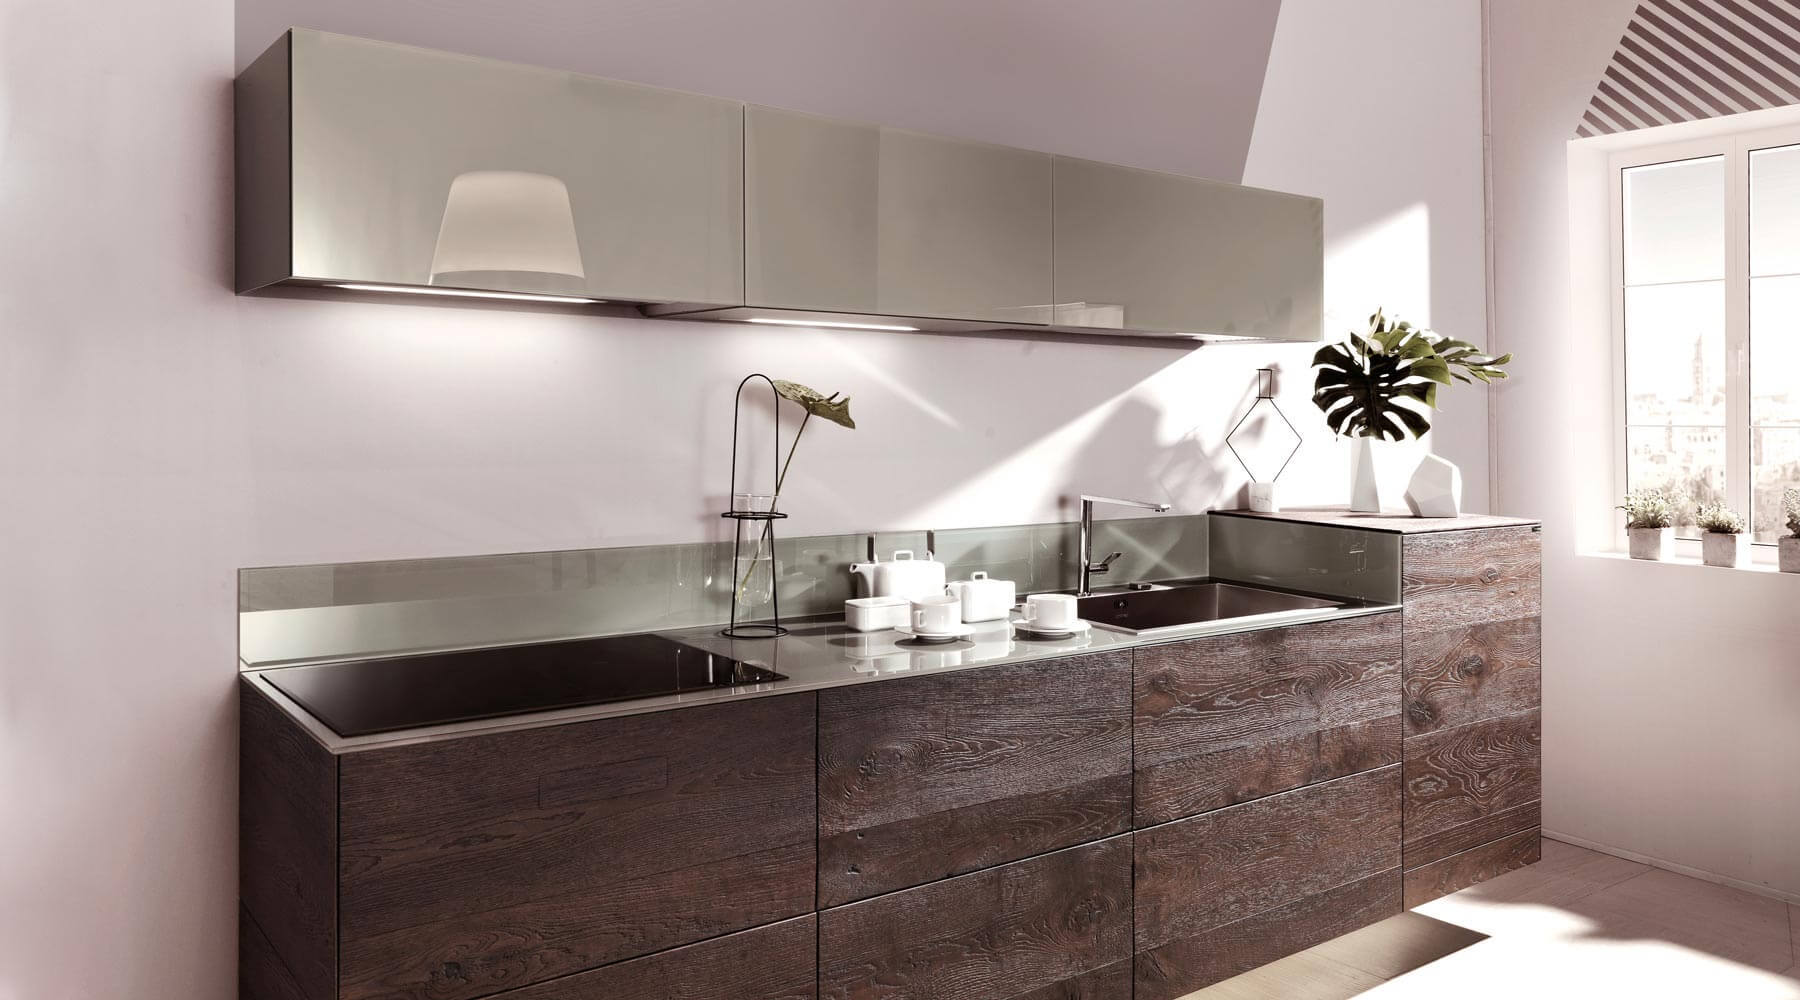 Best cucina moderna legno ideas home interior ideas - Top cucina moderna ...